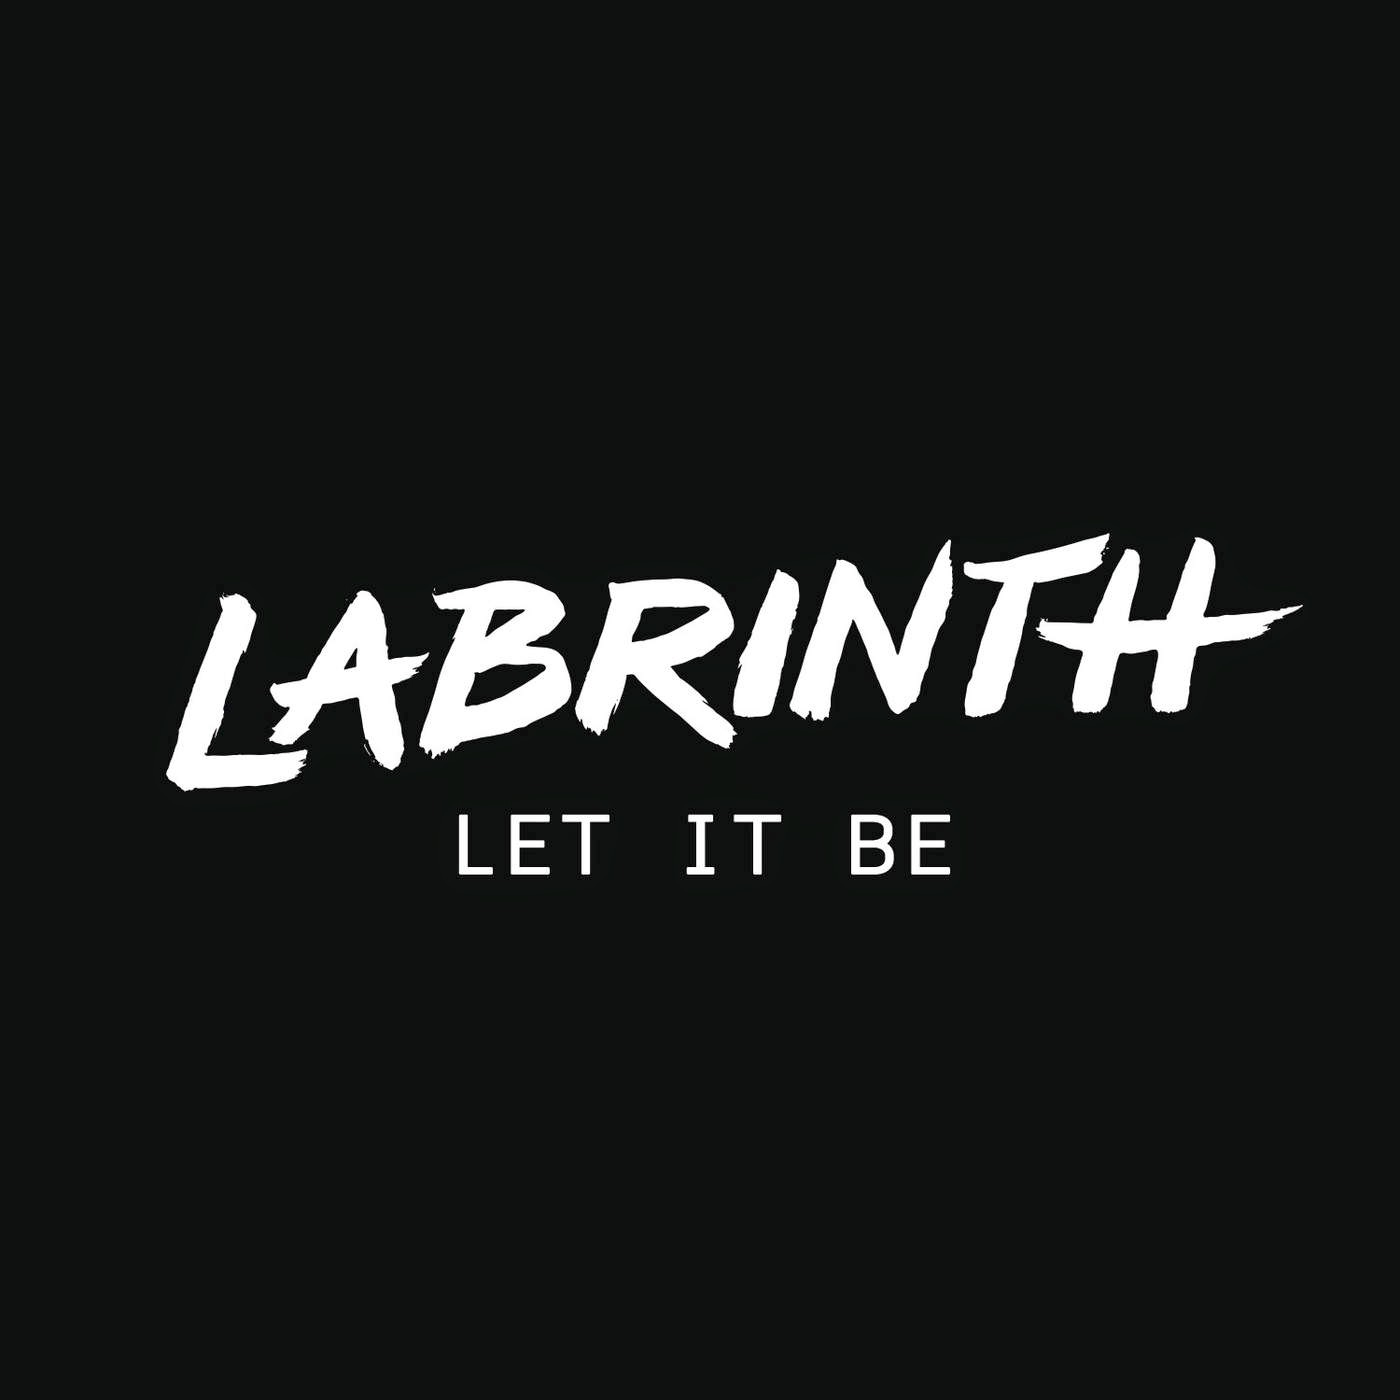 Labrinth - Let It Be - Single Cover